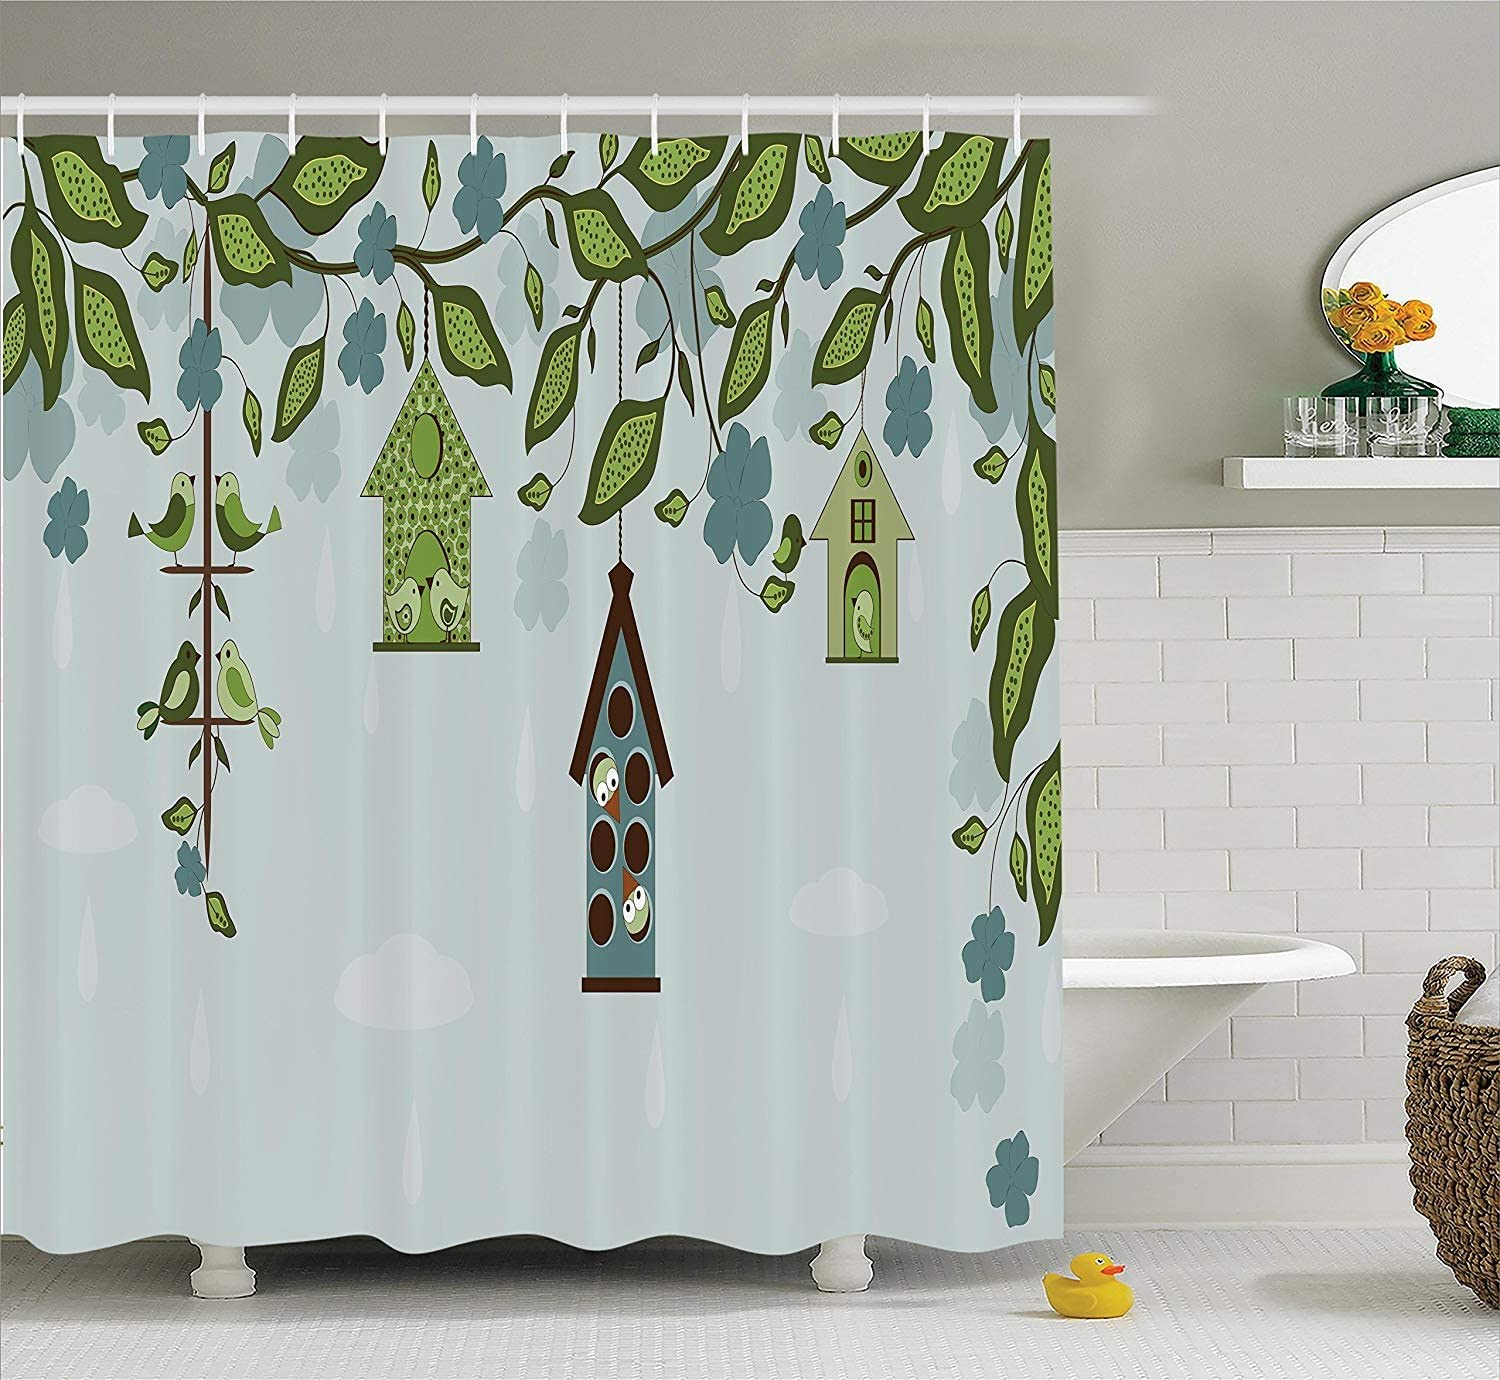 "Ambesonne Birds Shower Curtain, Birds Sitting in Cages Hanged on Floral Tree Branches Peace Blooming Nature Print, Cloth Fabric Bathroom Decor Set with Hooks, 70"" Long, Green Blue"